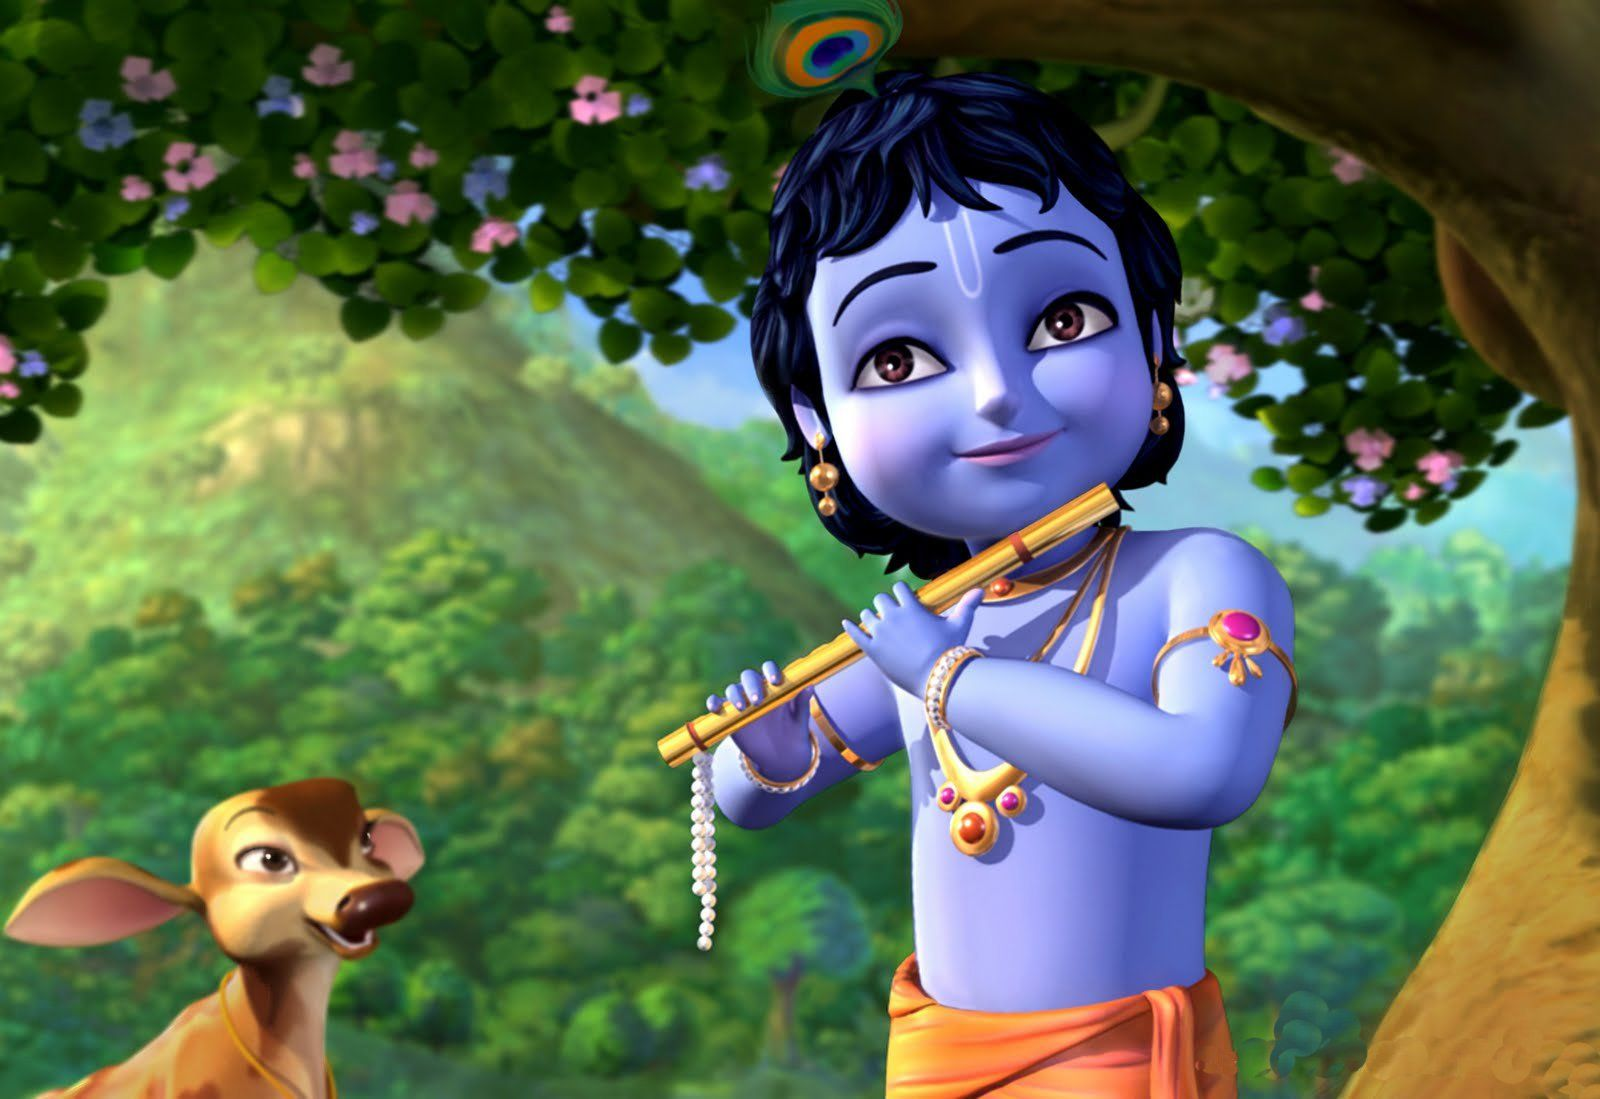 Hd Wallpapers For Pc Krishna